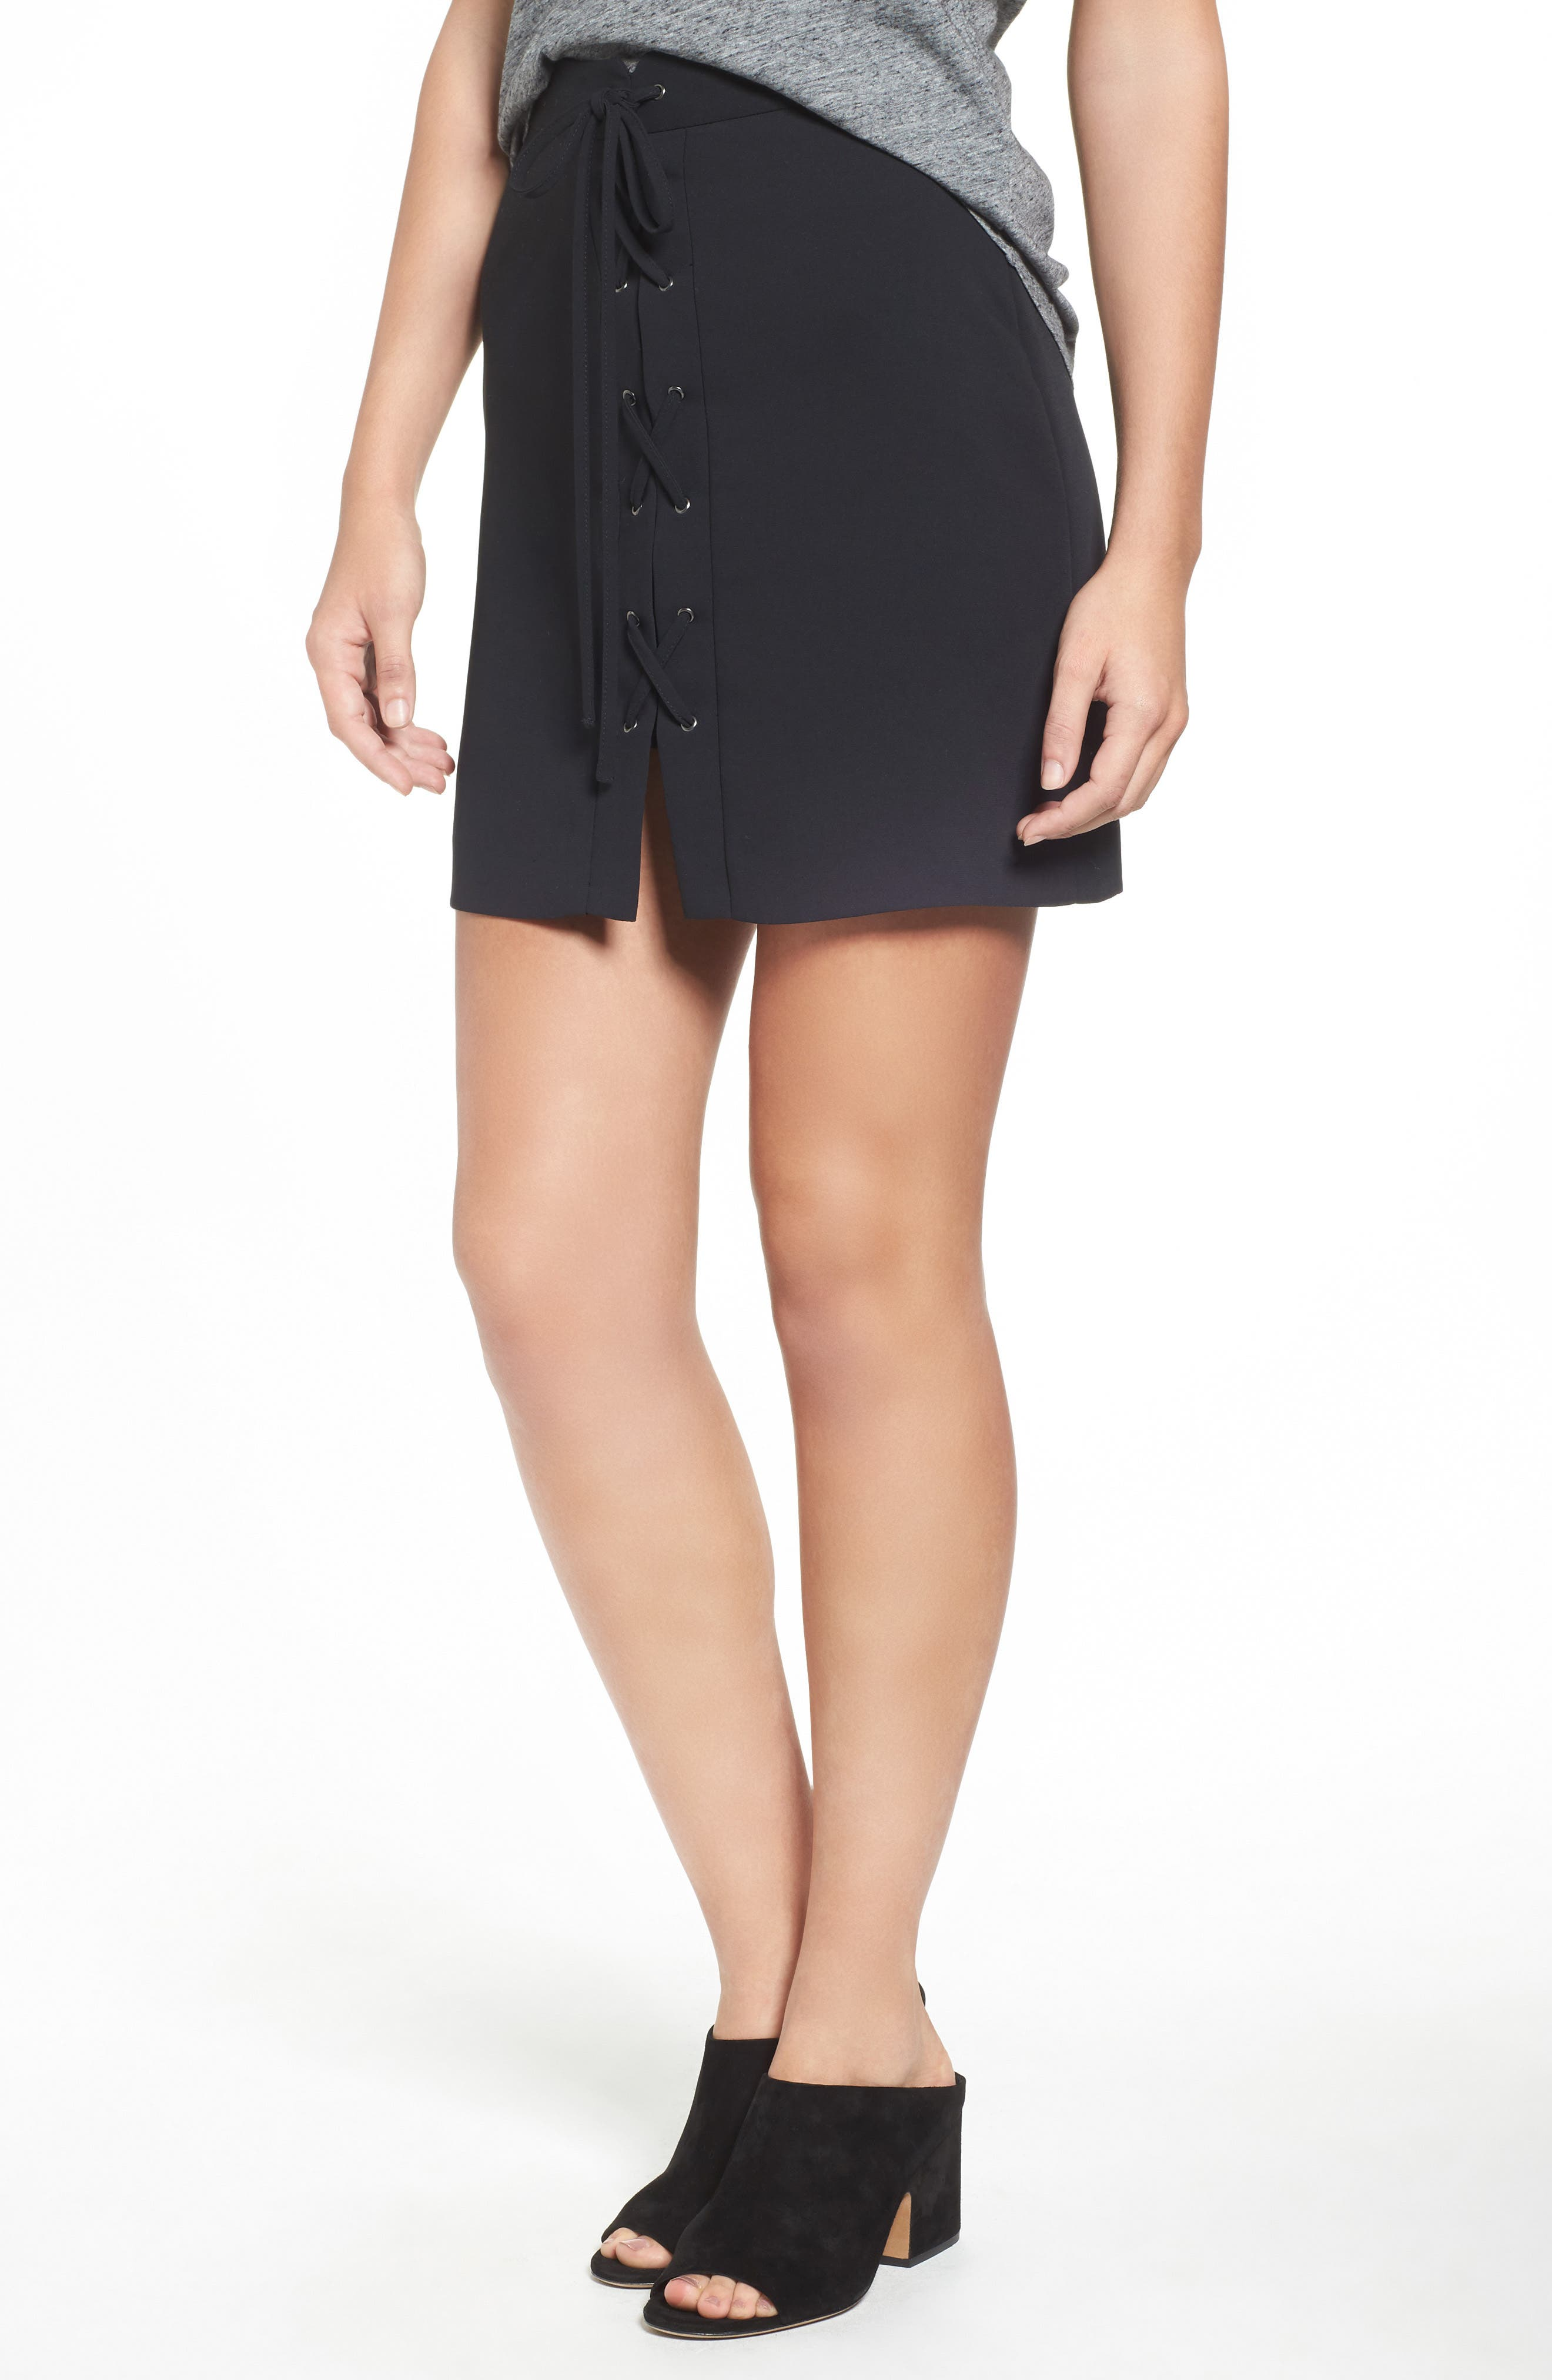 MADEWELL Lace-Up Skirt, Main, color, 001